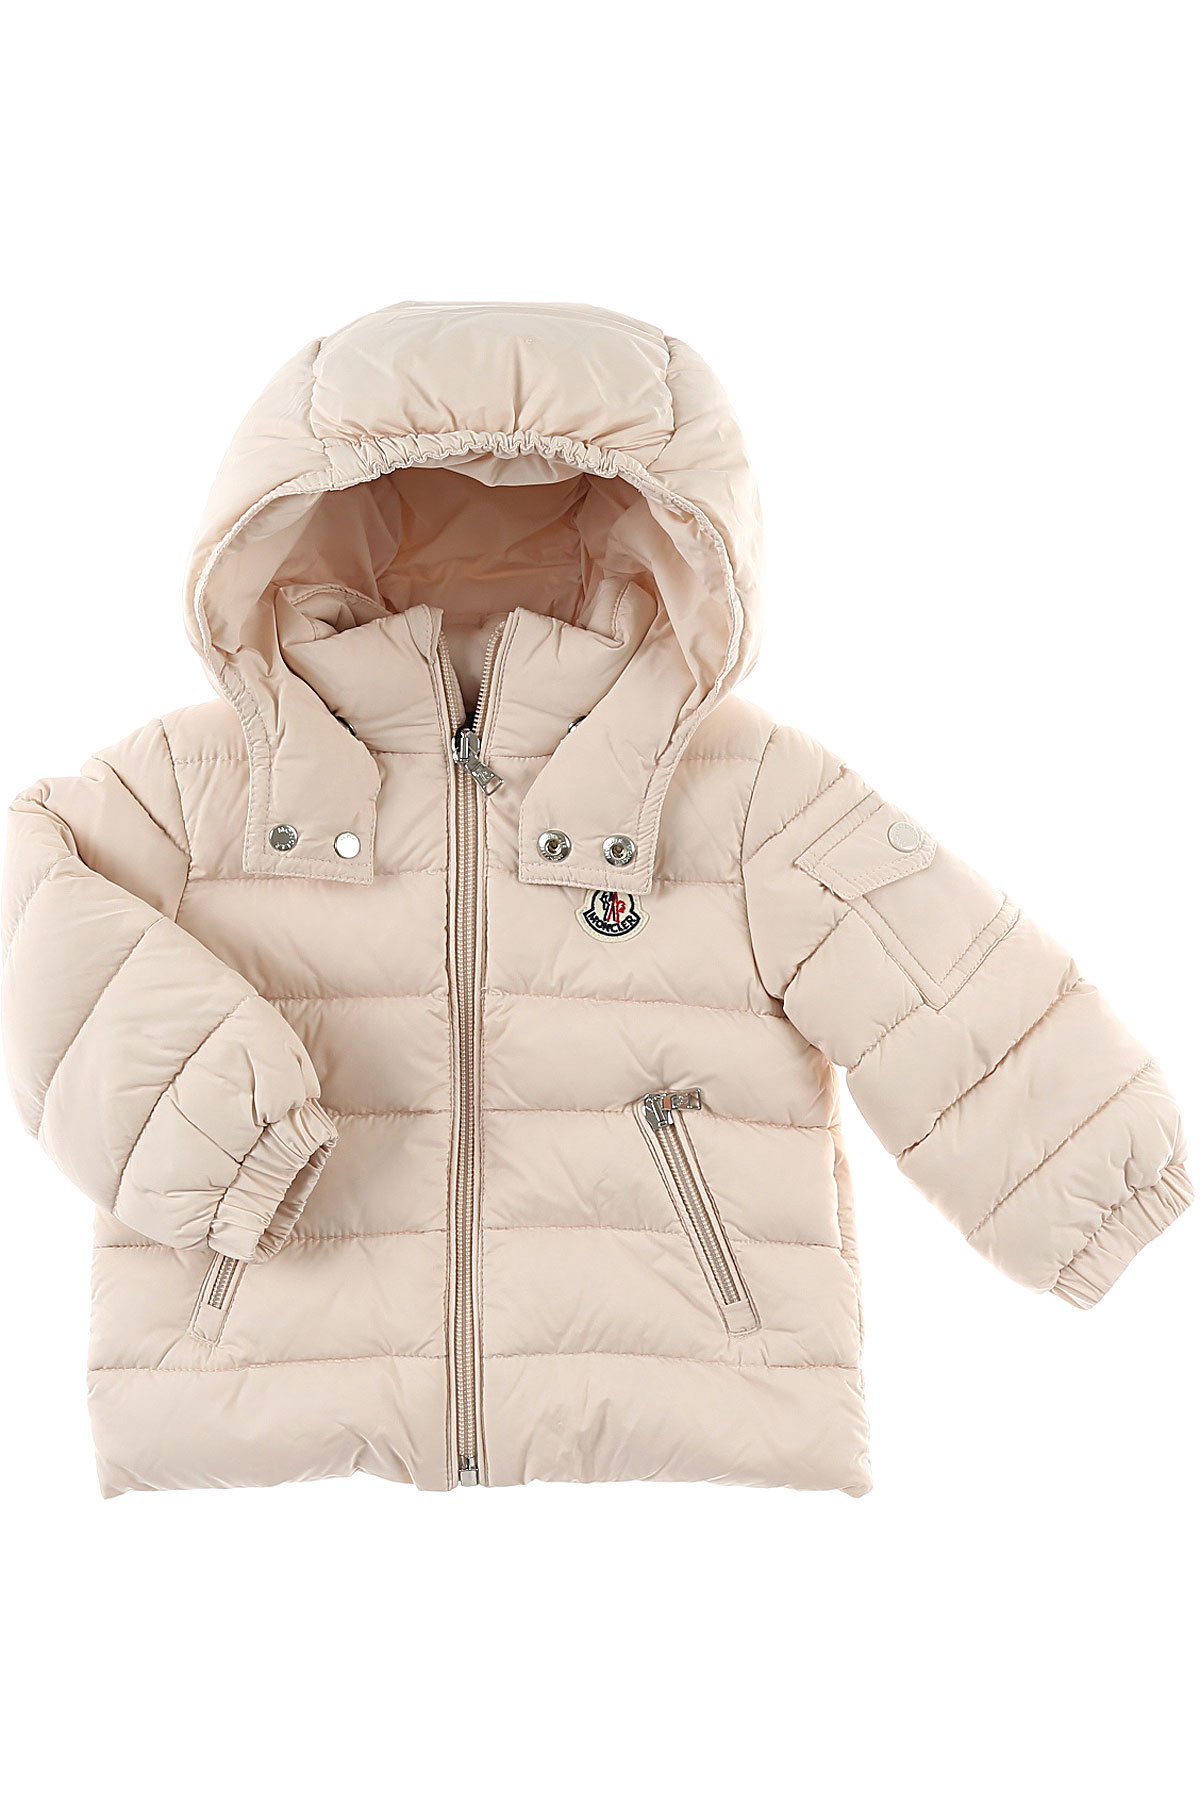 Image of Moncler Baby Down Jacket for Girls, Pink, polyamide, 2017, 12M 18M 6M 9M